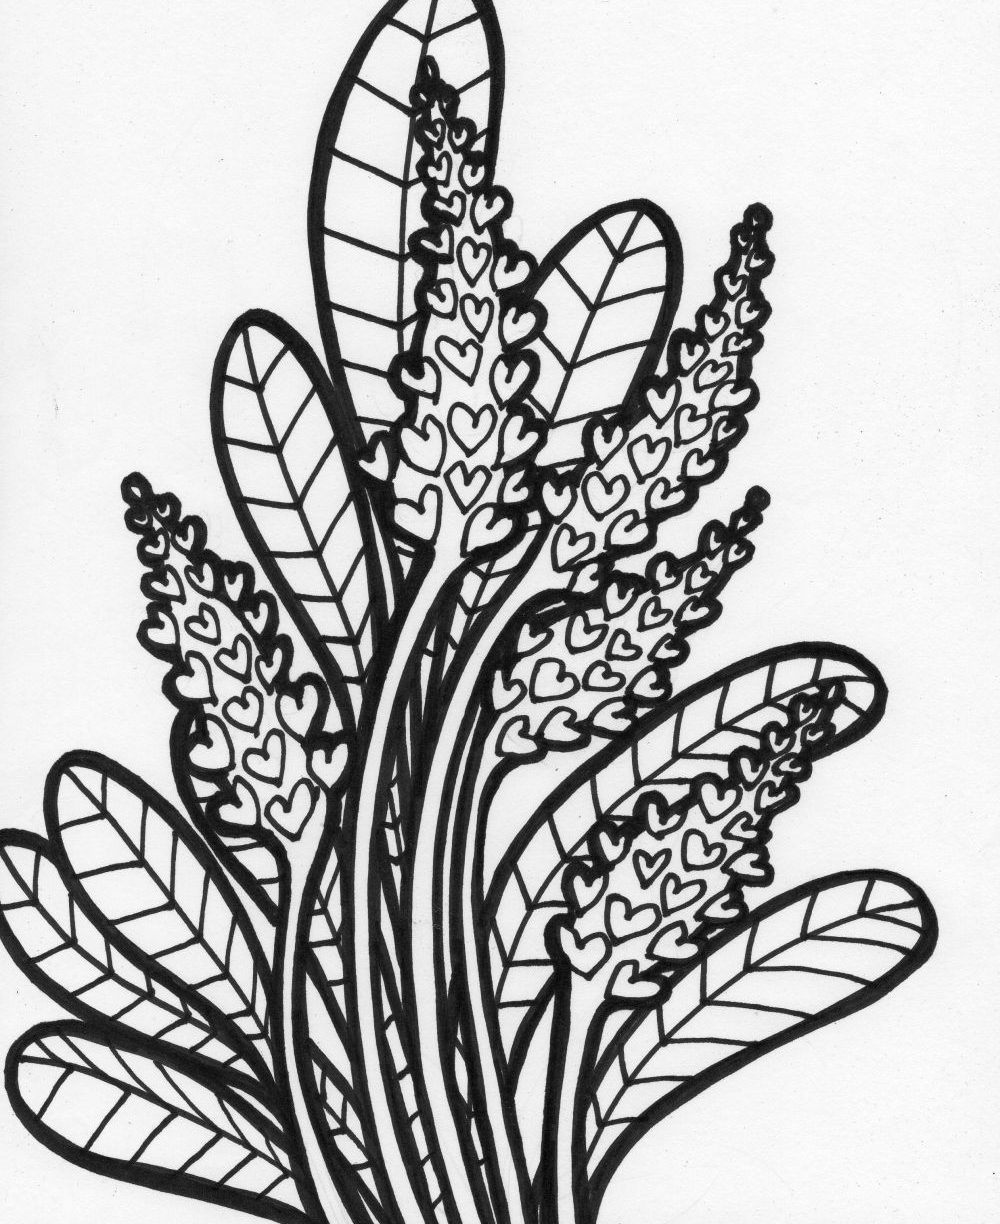 tropical coloring sheets tropical plants and hibiscus flowers coloring book page coloring sheets tropical